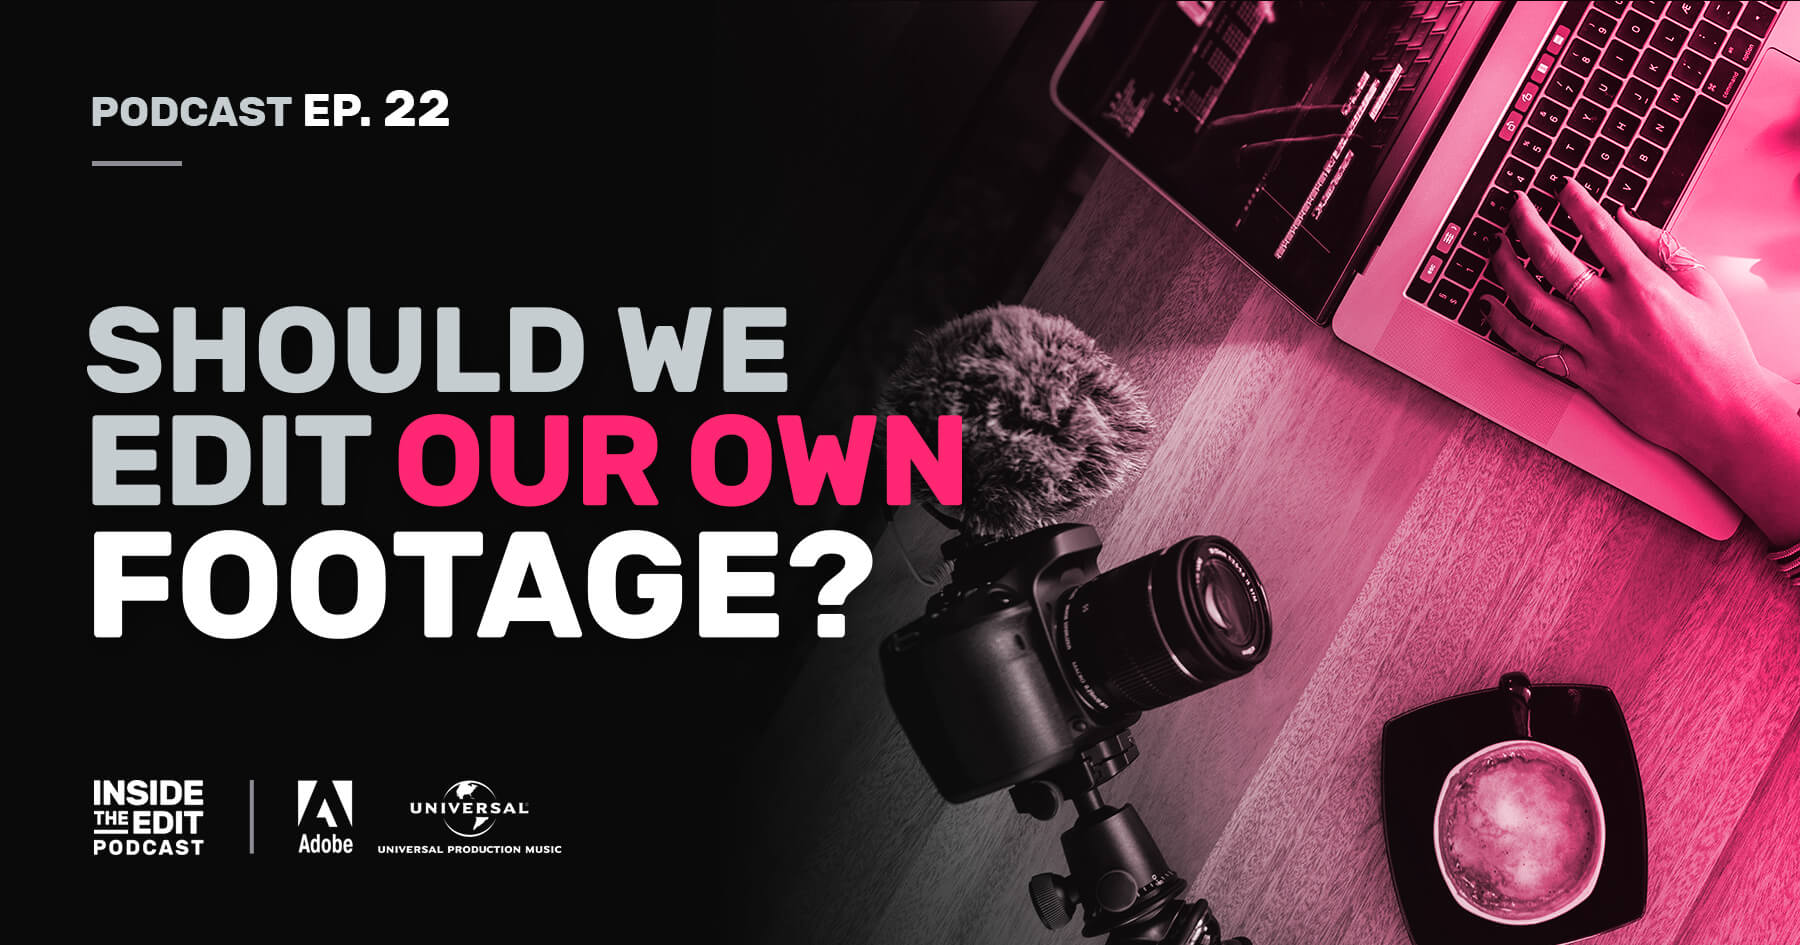 Should We Edit Our Own Footage?